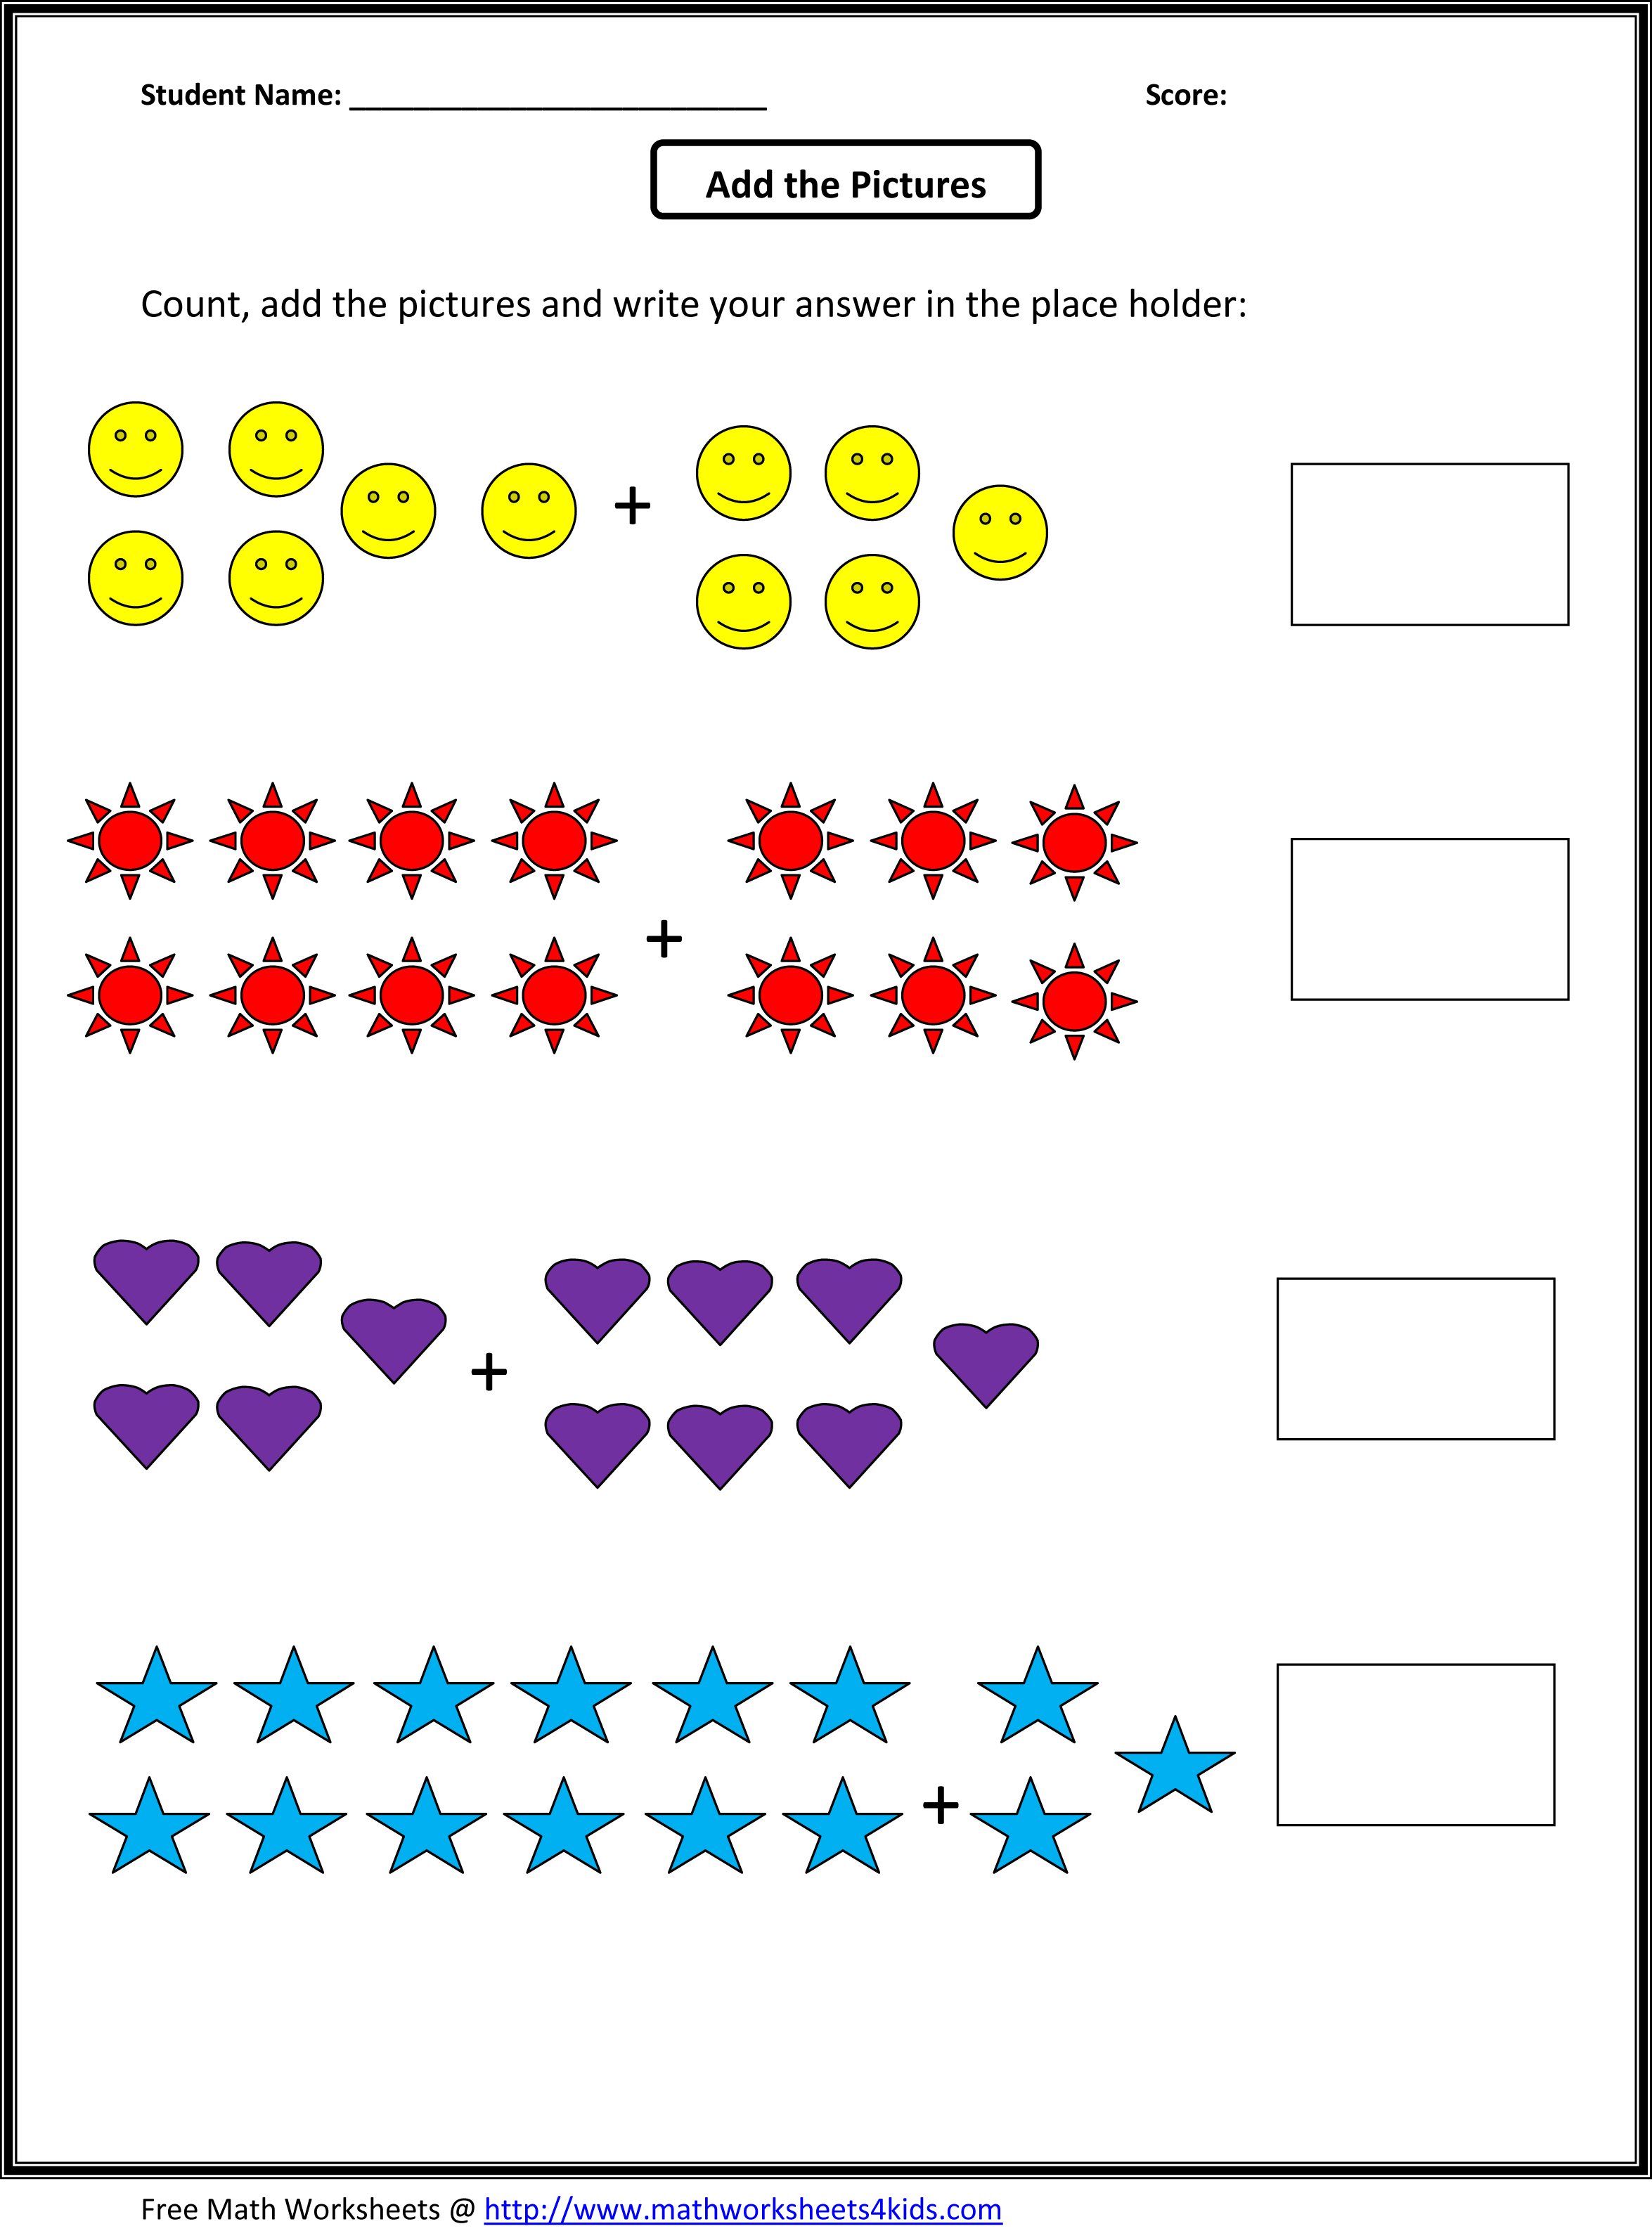 Weirdmailus  Stunning Grade  Maths Worksheet  Reocurent With Inspiring Math Worksheets For St Grade Free  Reocurent With Amazing Volume Worksheets Ks Also Converting Fractions To Decimals Worksheet Ks In Addition Ms Excel Worksheets And Evs Worksheets For Grade  As Well As Active And Passive Voice Worksheets For Th Grade Additionally Mathematics Kindergarten Worksheets From Reocurentcom With Weirdmailus  Inspiring Grade  Maths Worksheet  Reocurent With Amazing Math Worksheets For St Grade Free  Reocurent And Stunning Volume Worksheets Ks Also Converting Fractions To Decimals Worksheet Ks In Addition Ms Excel Worksheets From Reocurentcom